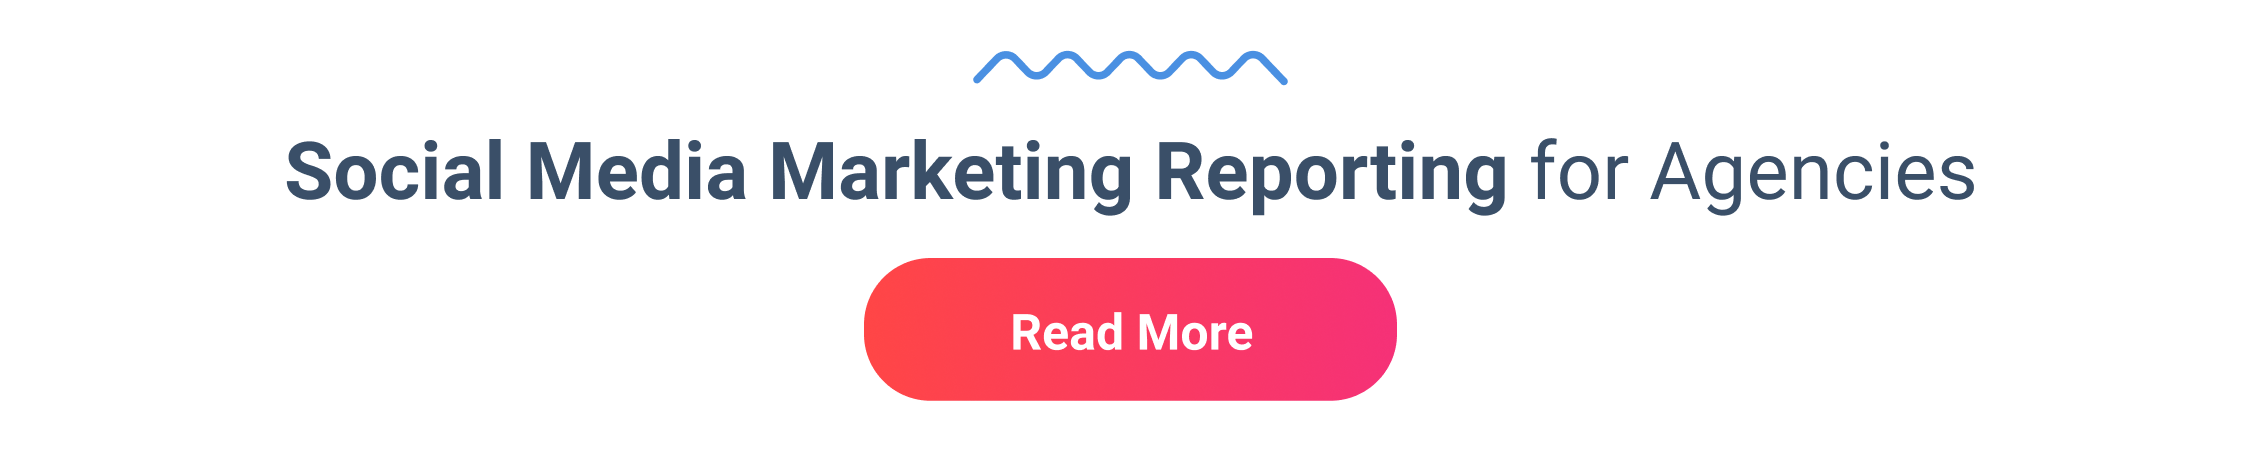 Social Media Marketing Reporting for Agencies